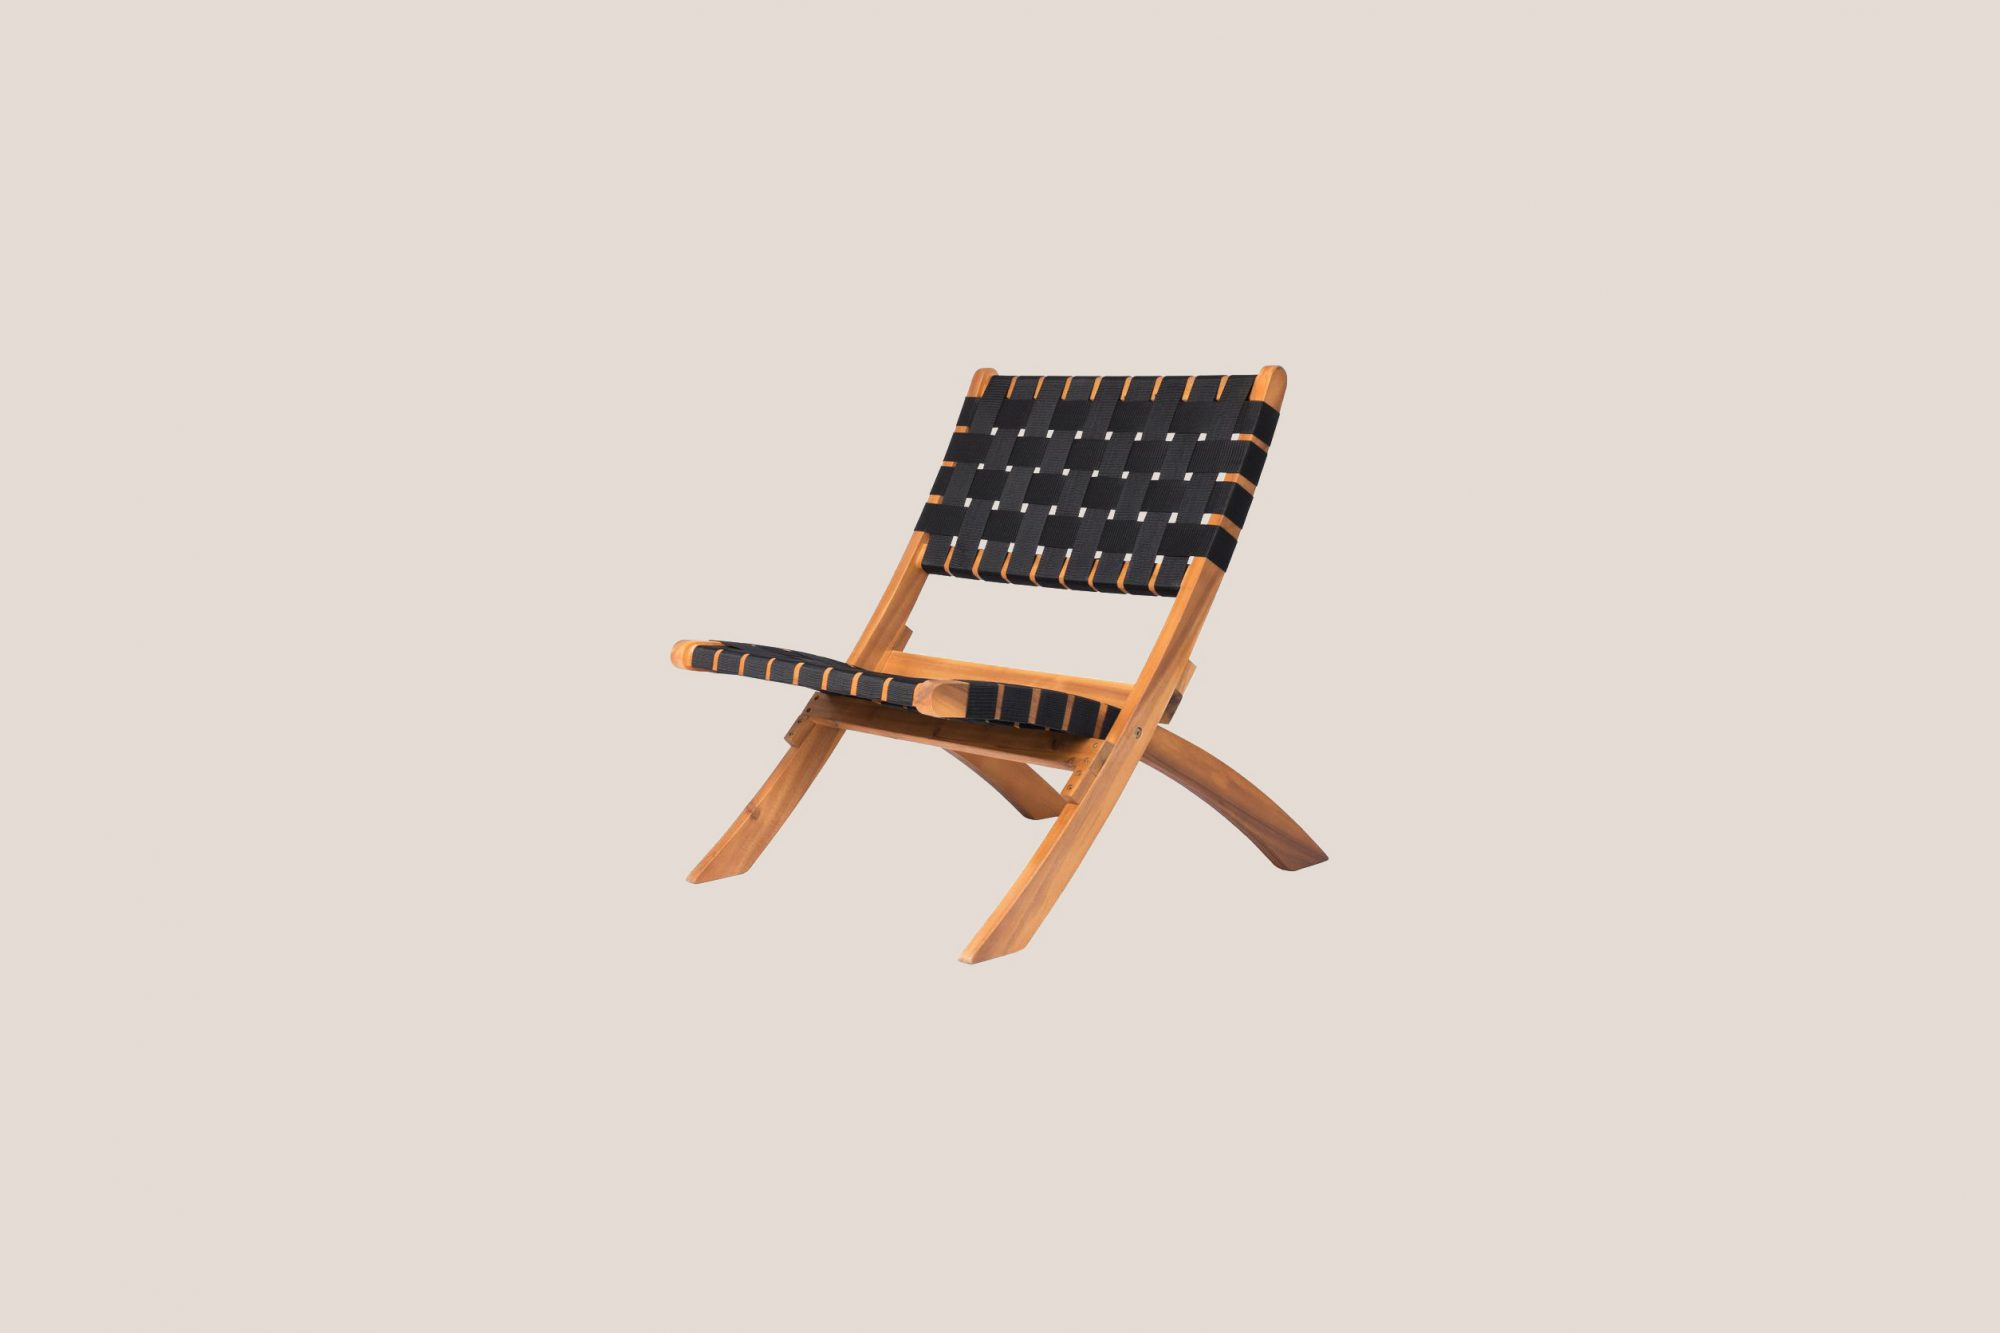 Home Depot Sava Foldable Wood Outdoor Natural Black Web Lounge Chair